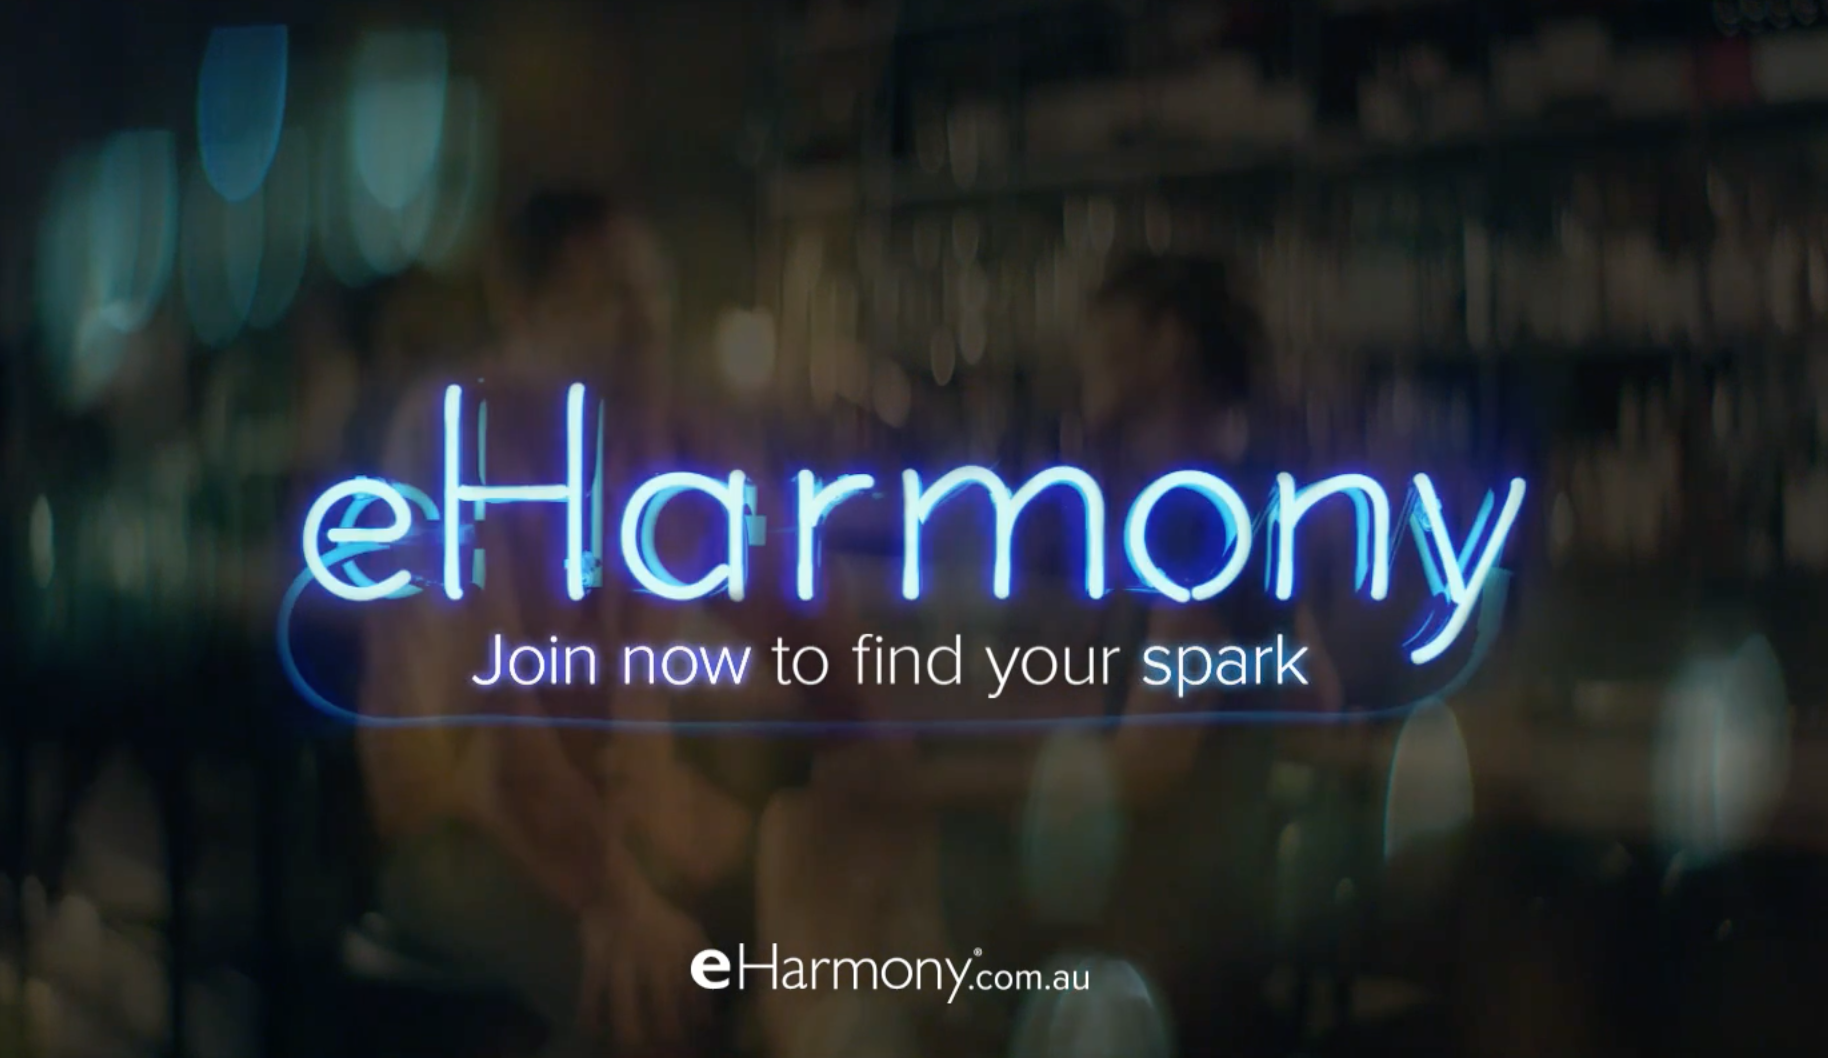 eHarmony Aims To Find Its Spark With New TV Campaign